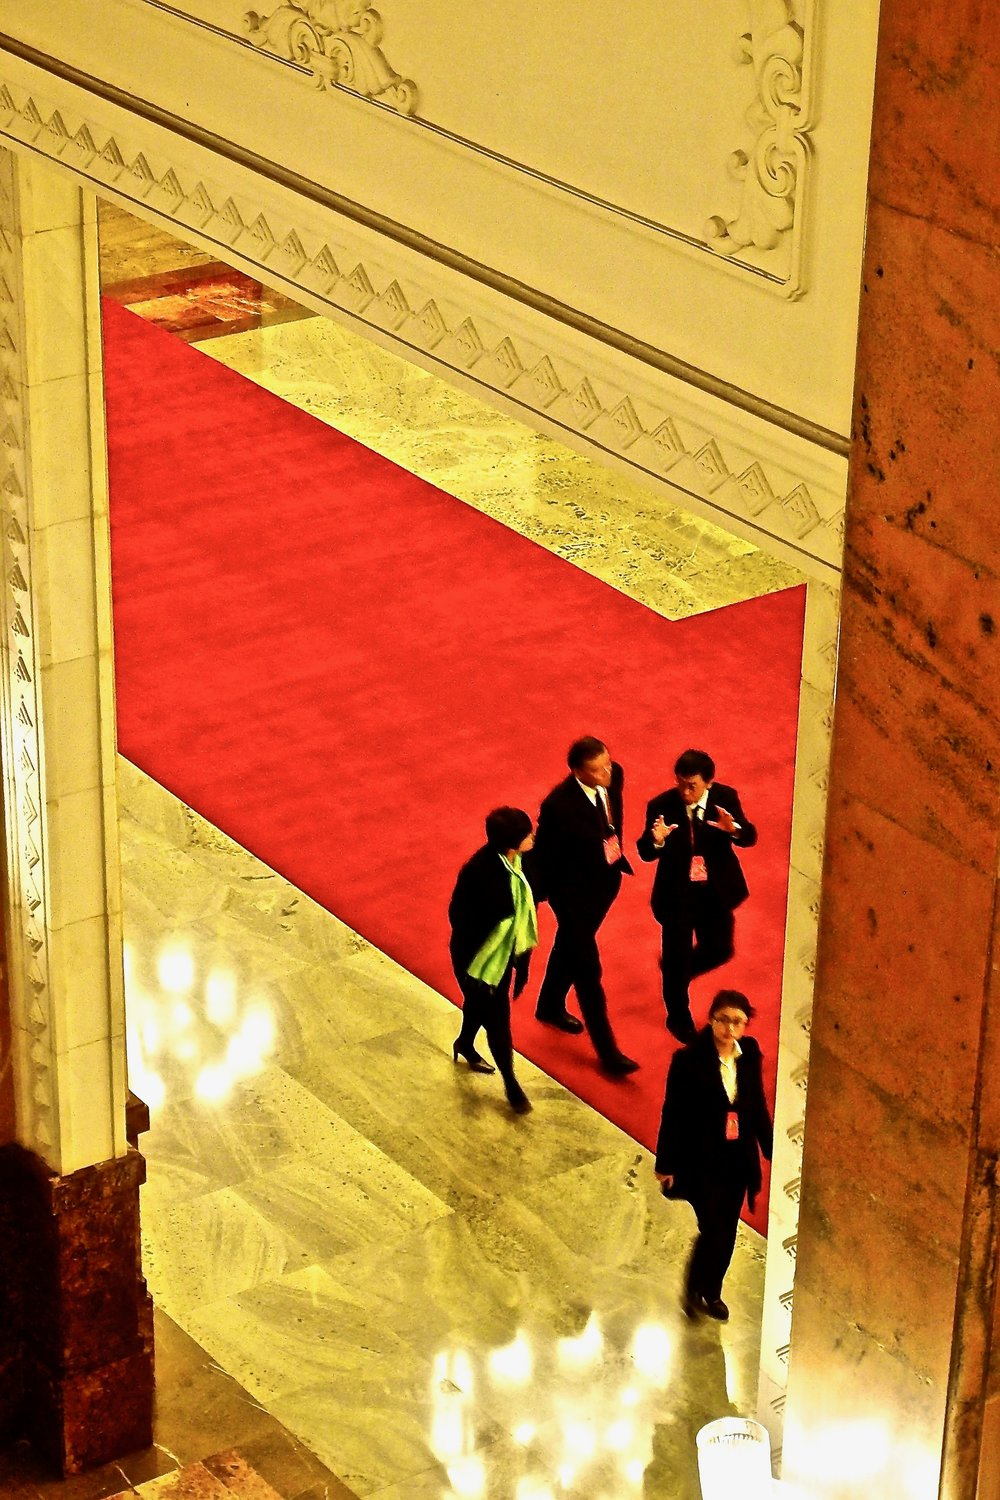 Chinese officials in the Great Hall of the People, Beijing. (C) Remko Tanis